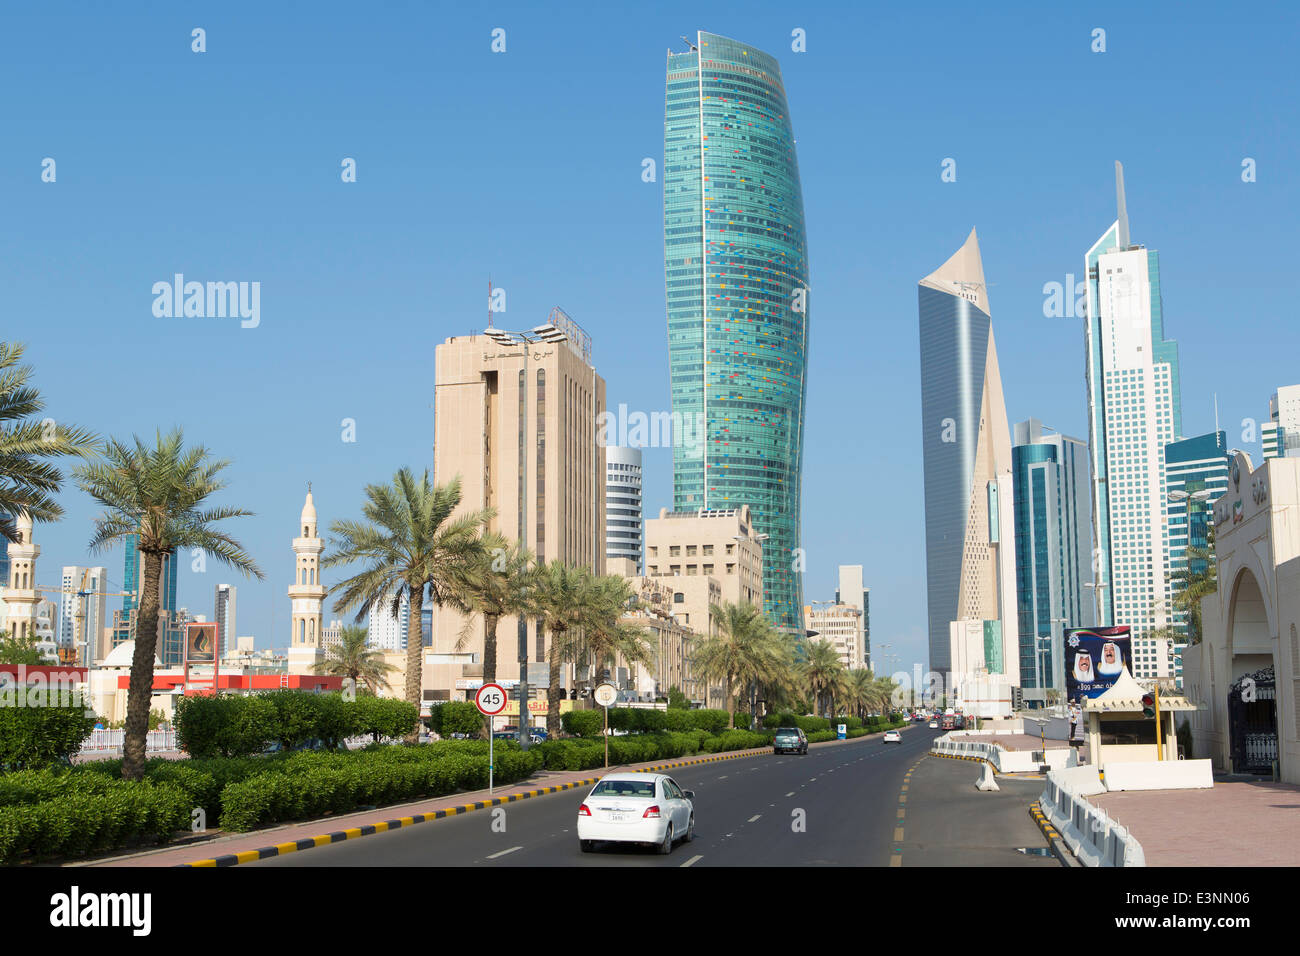 analysis of e commerce in kuwait Another limitation that hinders the development of ecommerce in kuwait is the small size of the market in kuwait and the relatively small number of skilled and specialized people and firms in the internet and e-commerce industry.